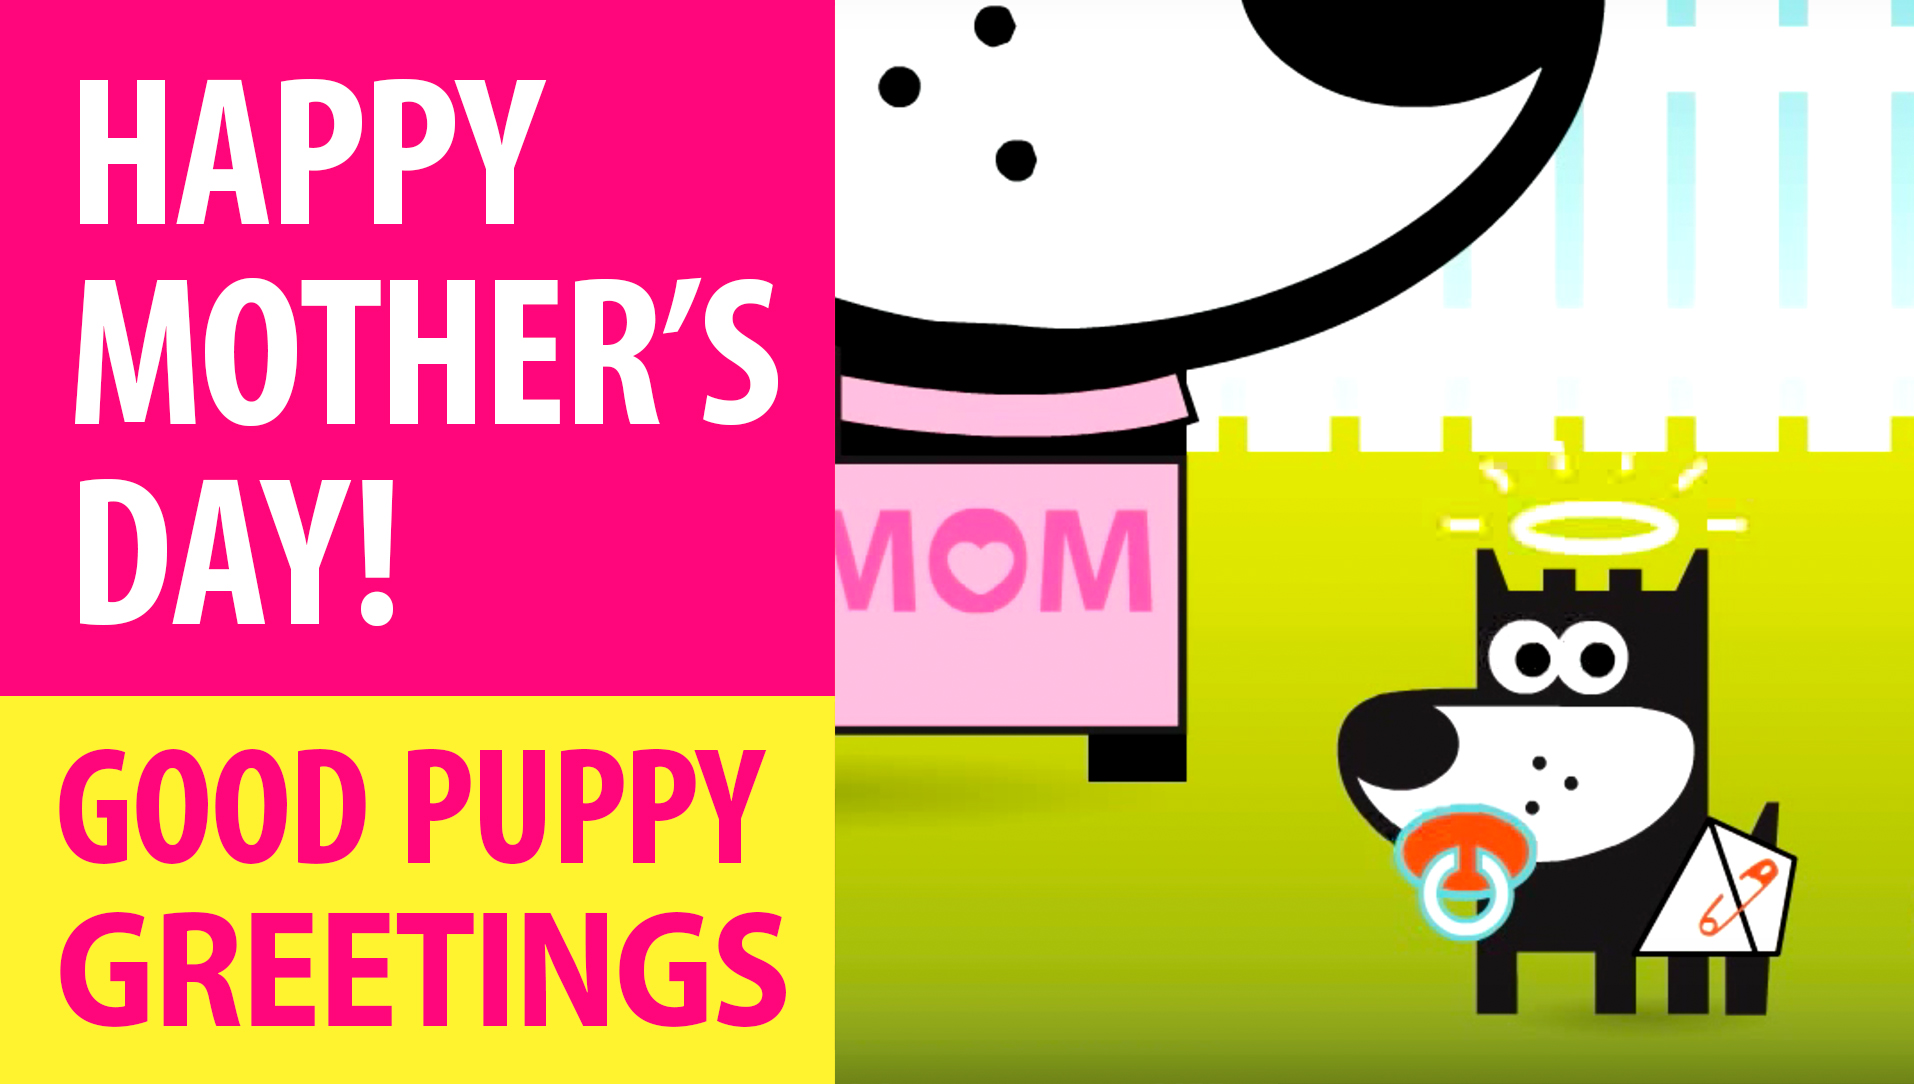 Happy Mother's Day! Animated Greeting Cards - Free E-Cards By GOOD PUPPY